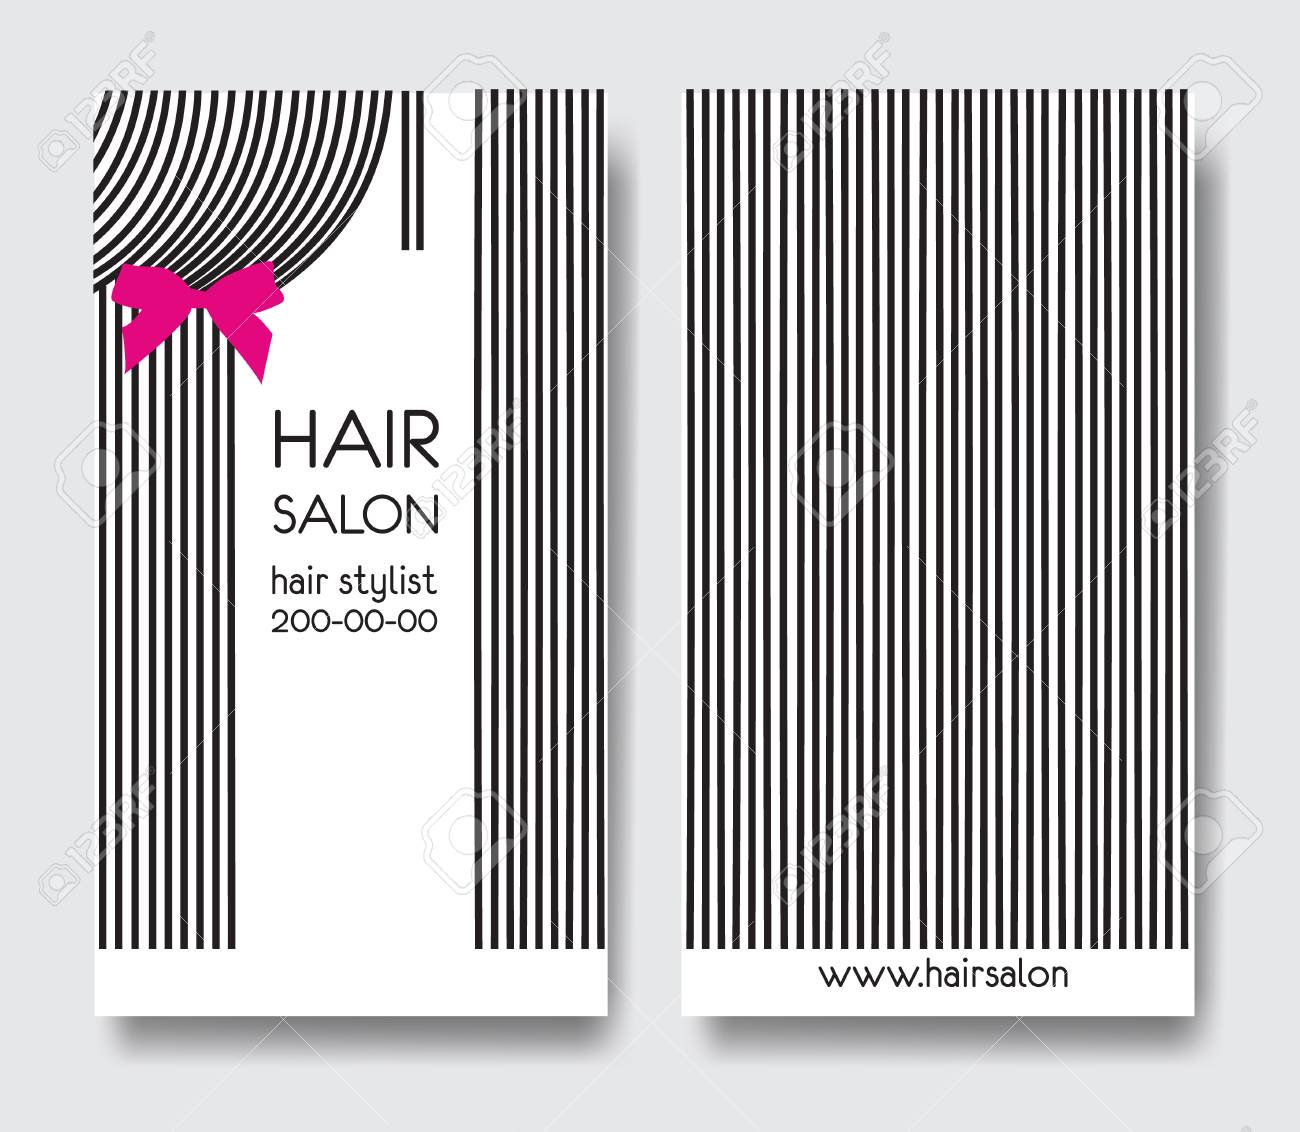 Template design business card with long straight hair and bow template design business card with long straight hair and bow business card front and back colourmoves